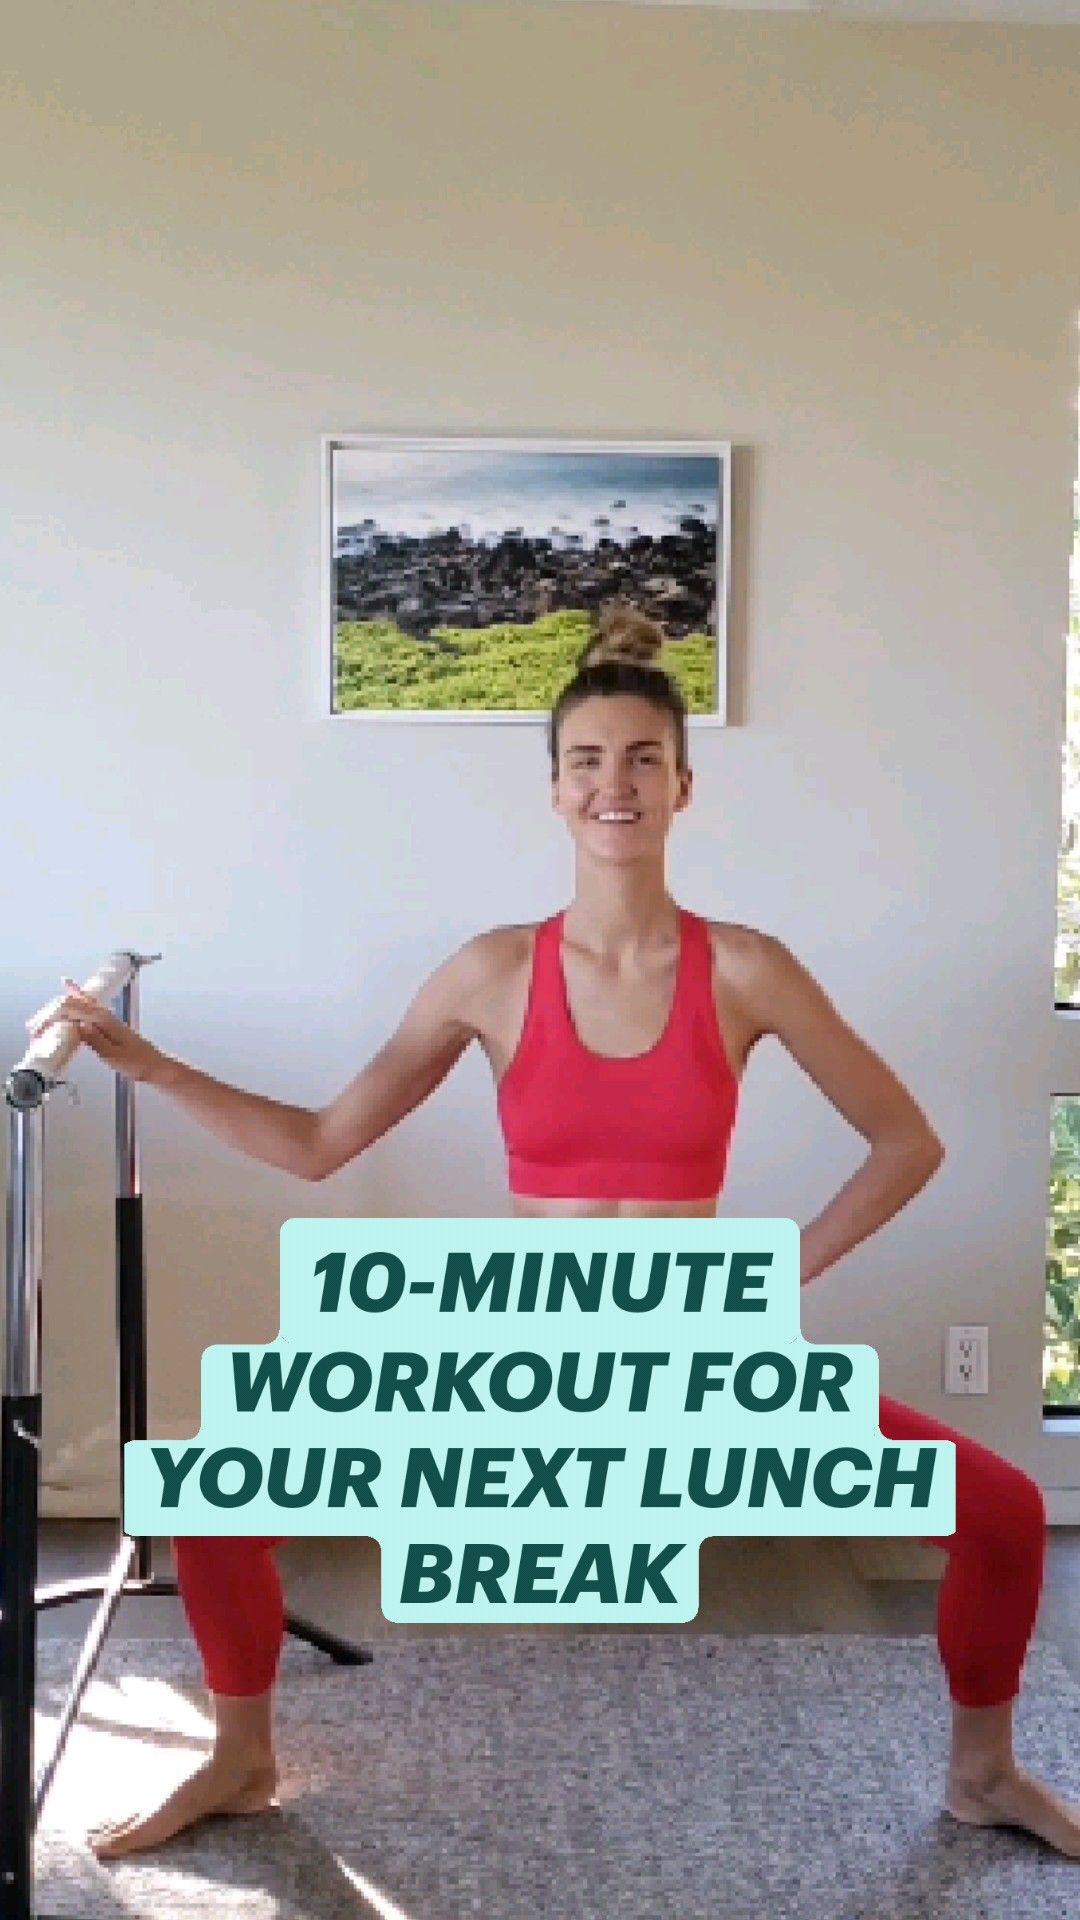 10-Minute Workout For Your Next Lunch Break